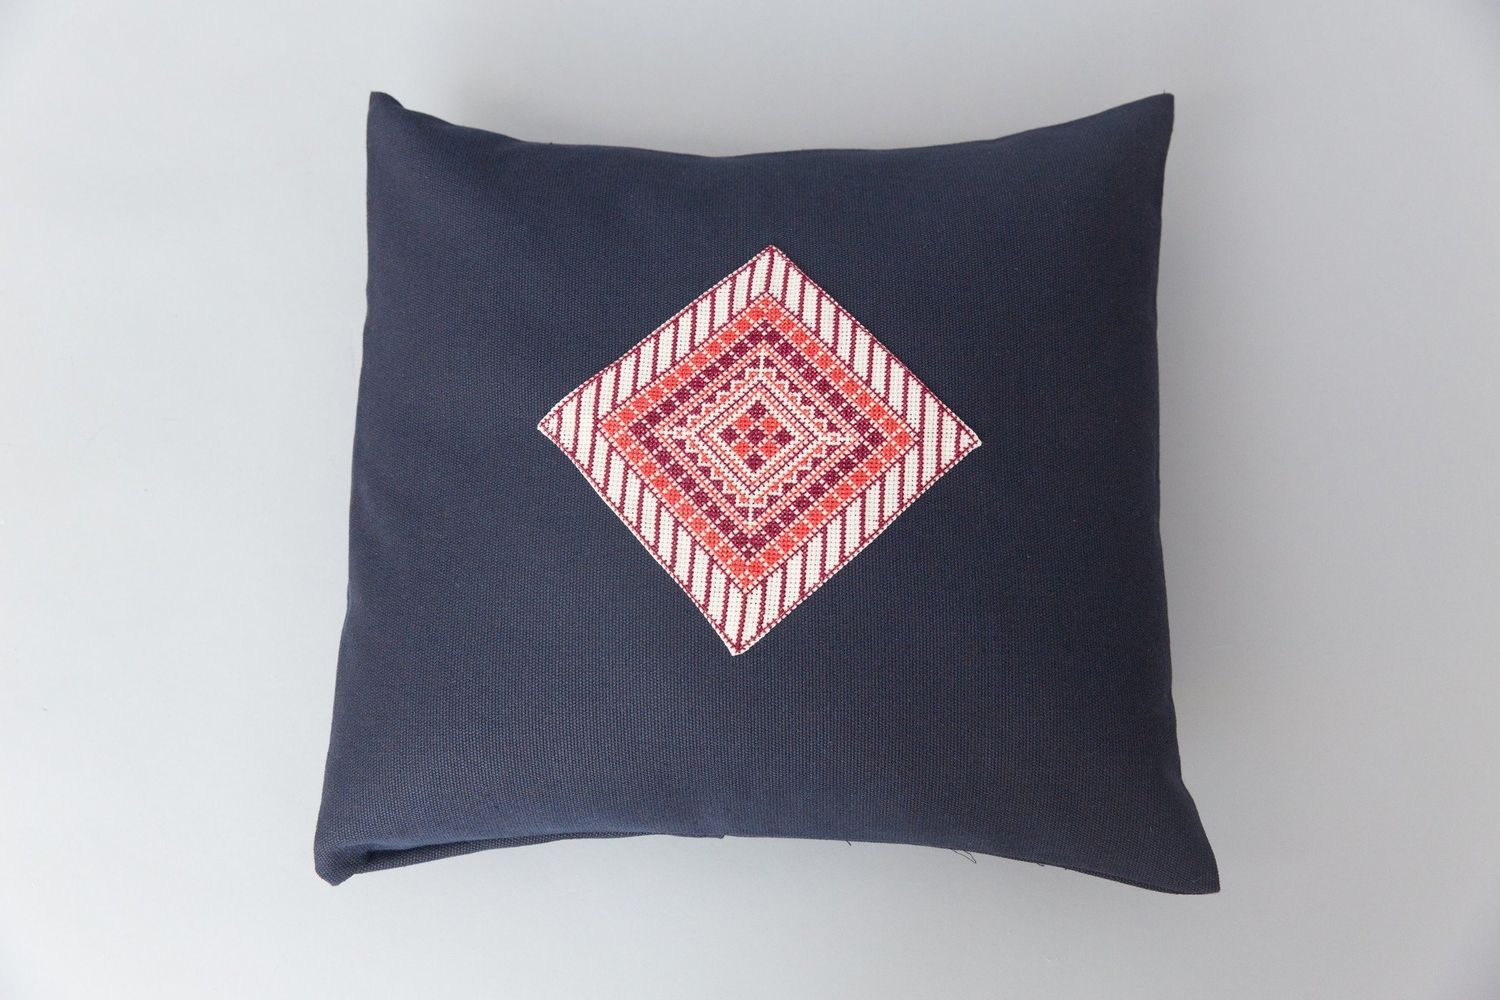 The Diamond Pillow in Blue